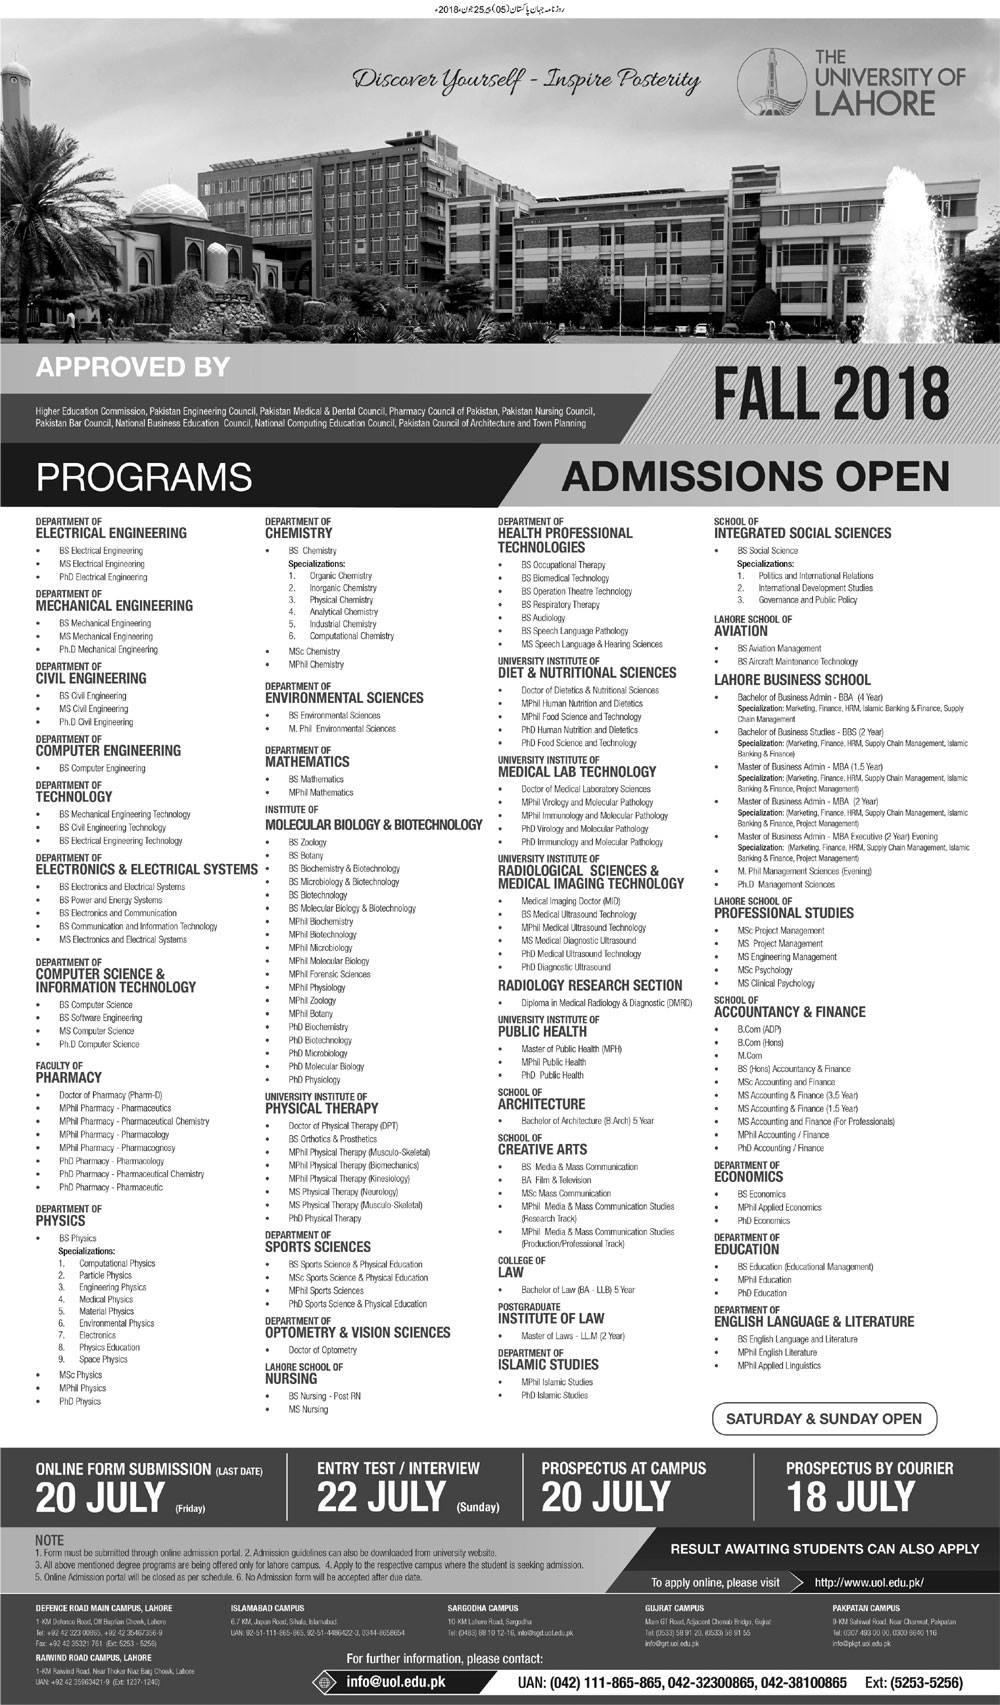 The University of Lahore – Admissions Fall 2018